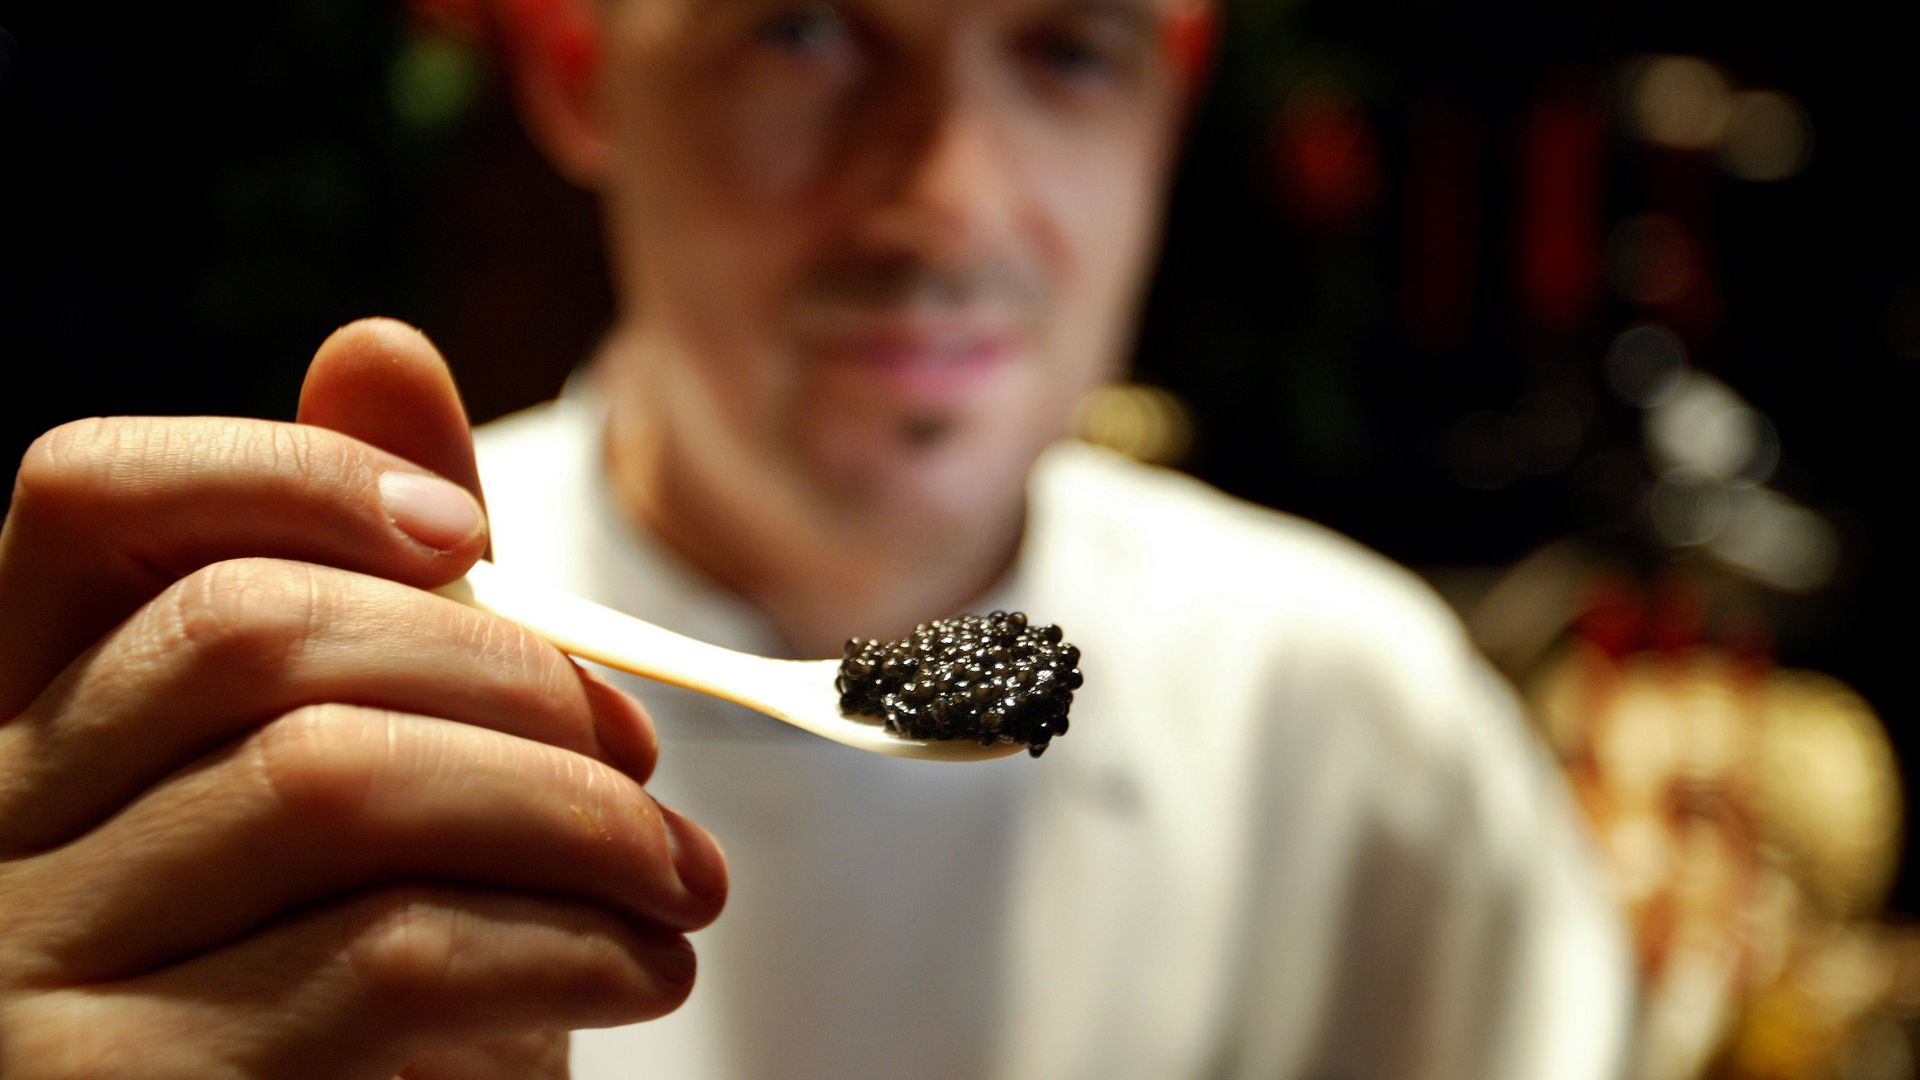 A man holds up caviar on a spoon.